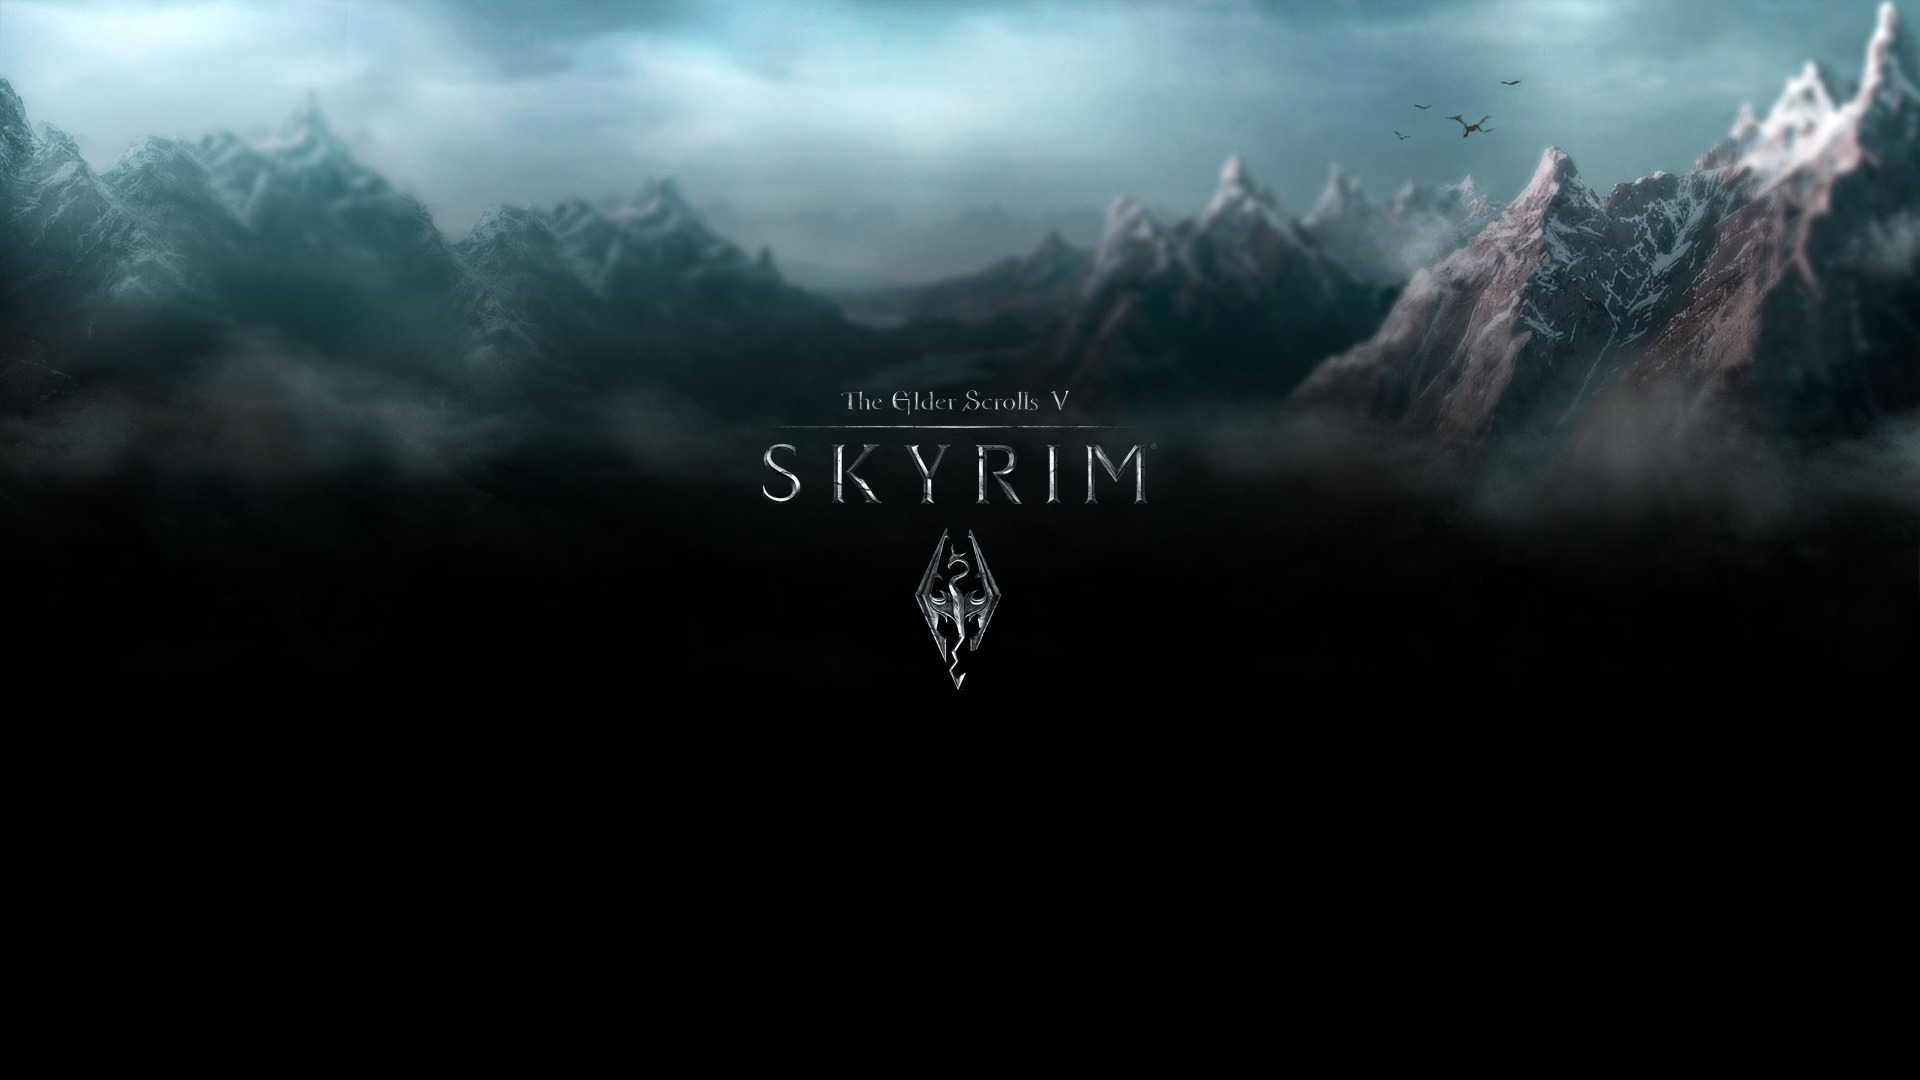 Wallpaper The Elder Scrolls V: Skyrim logo and mountains